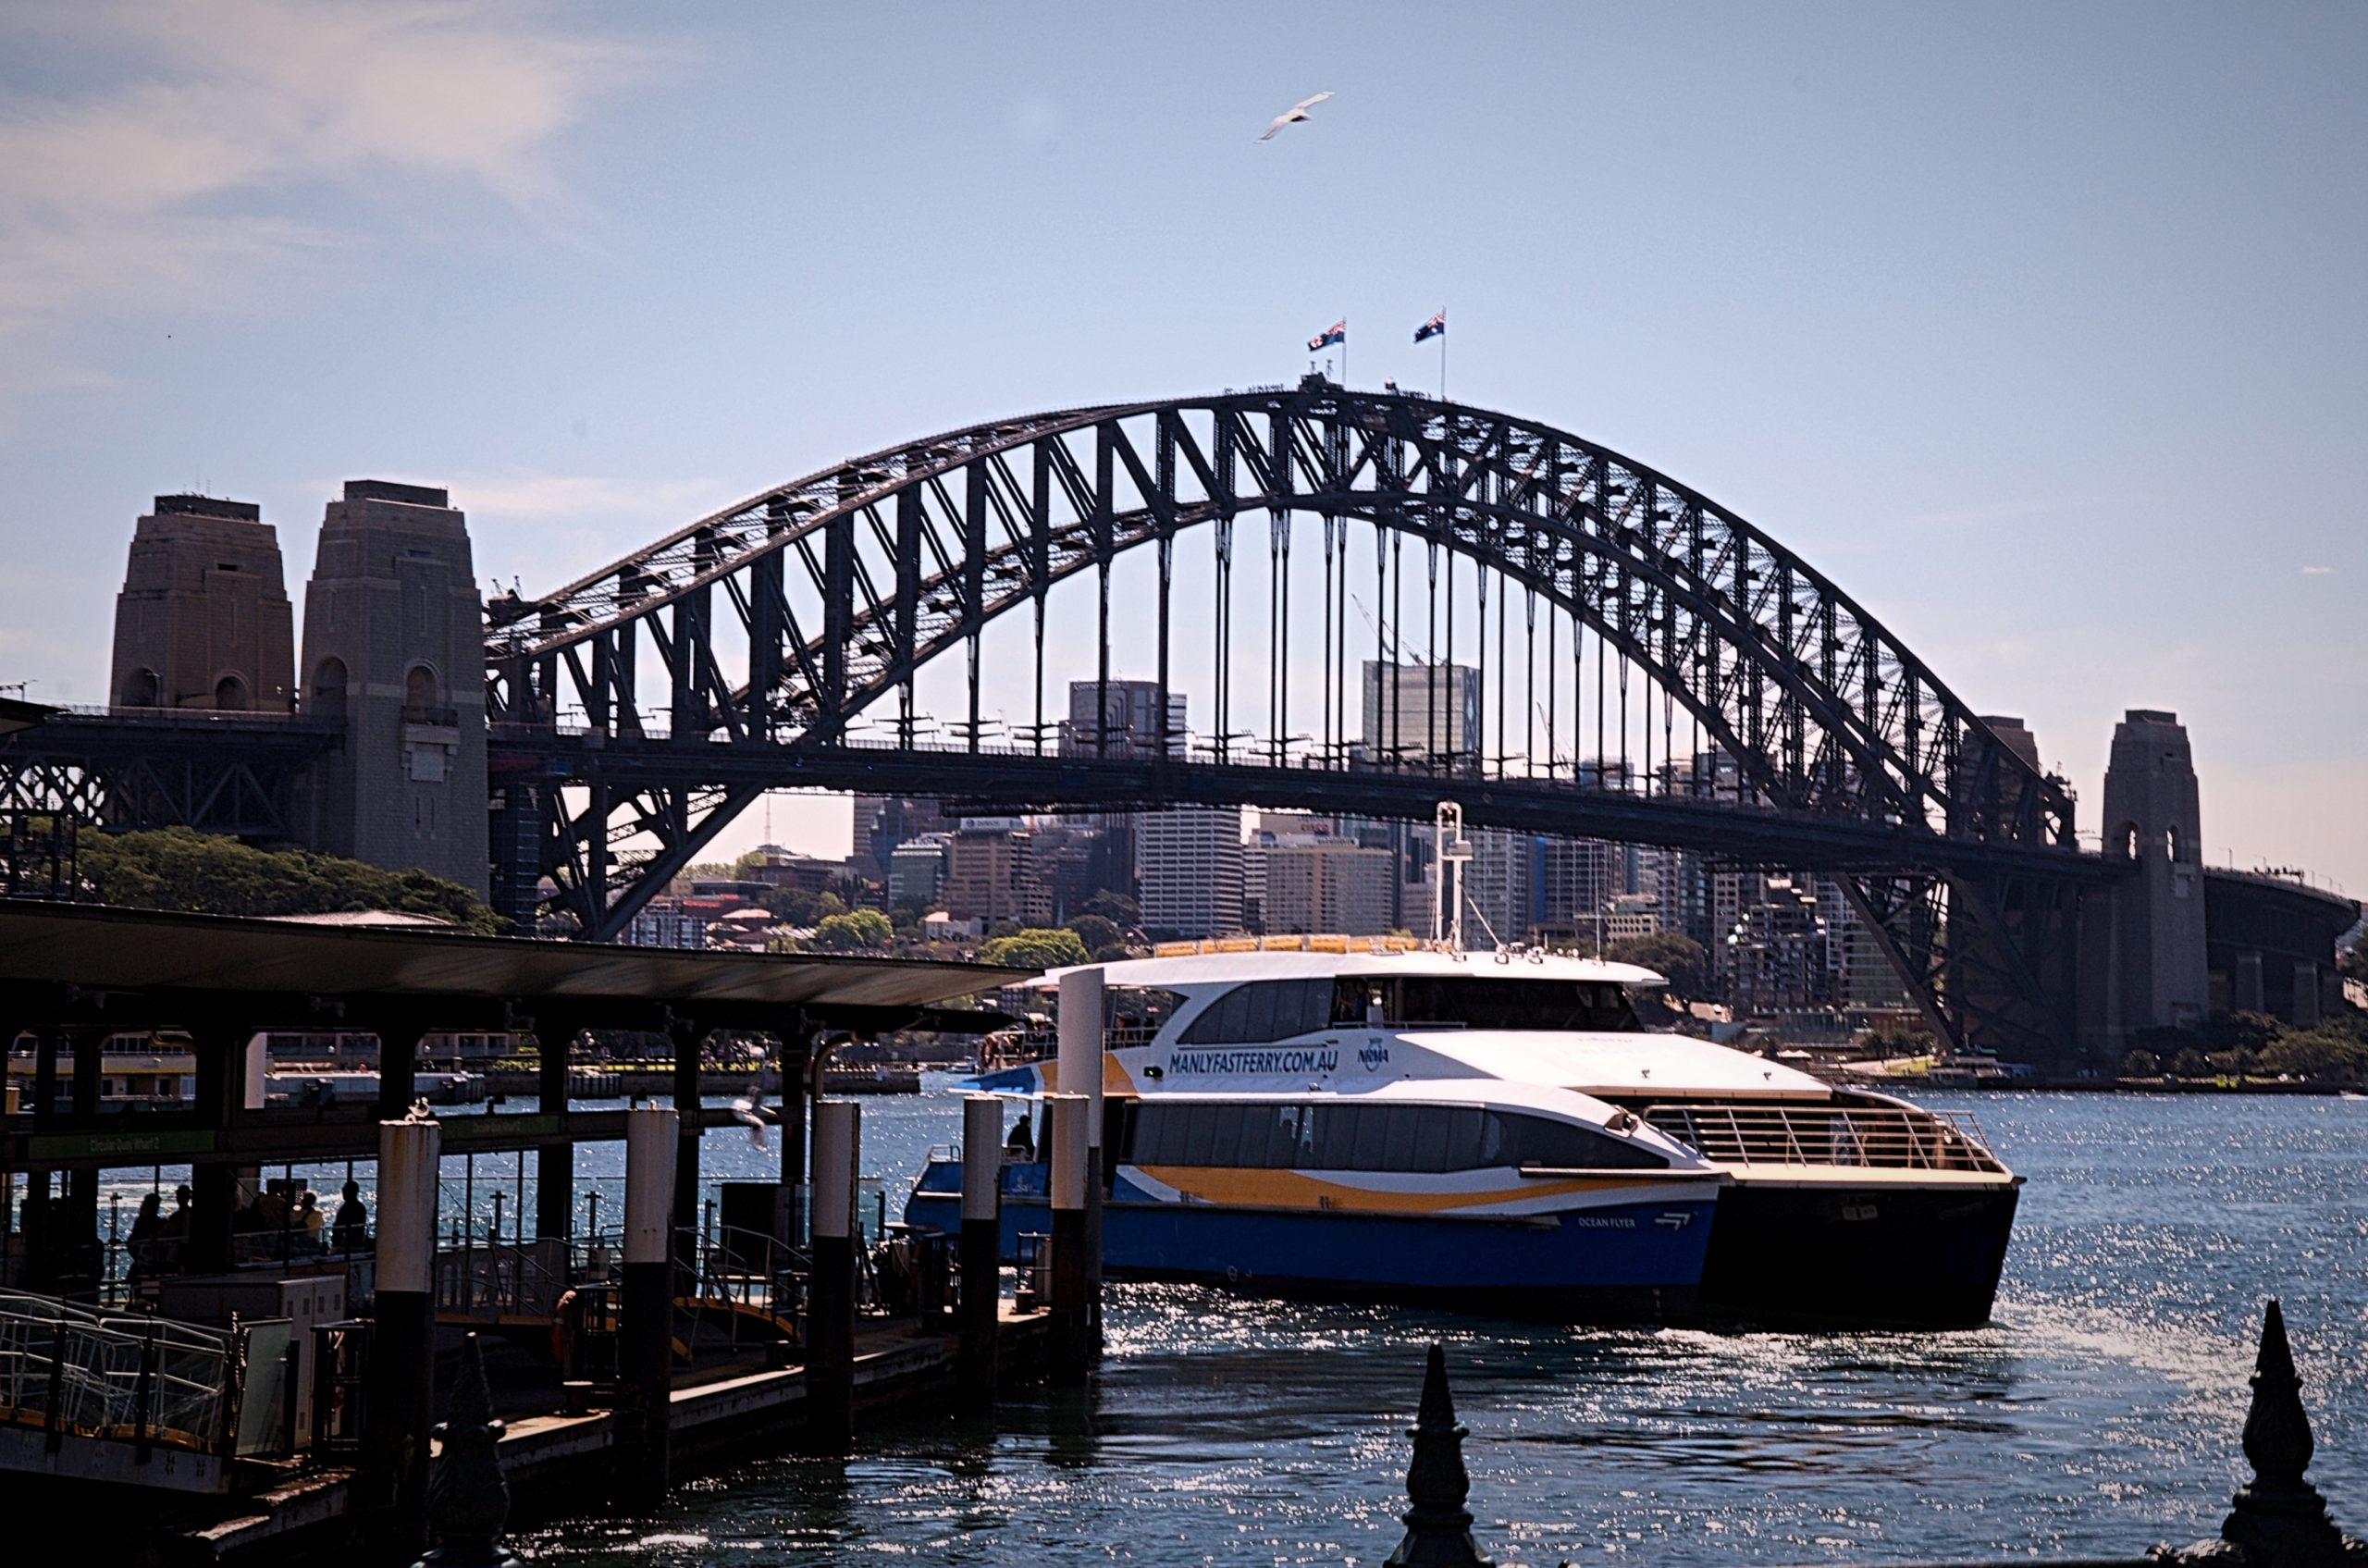 Sydney Harbour Bridge & Ferry